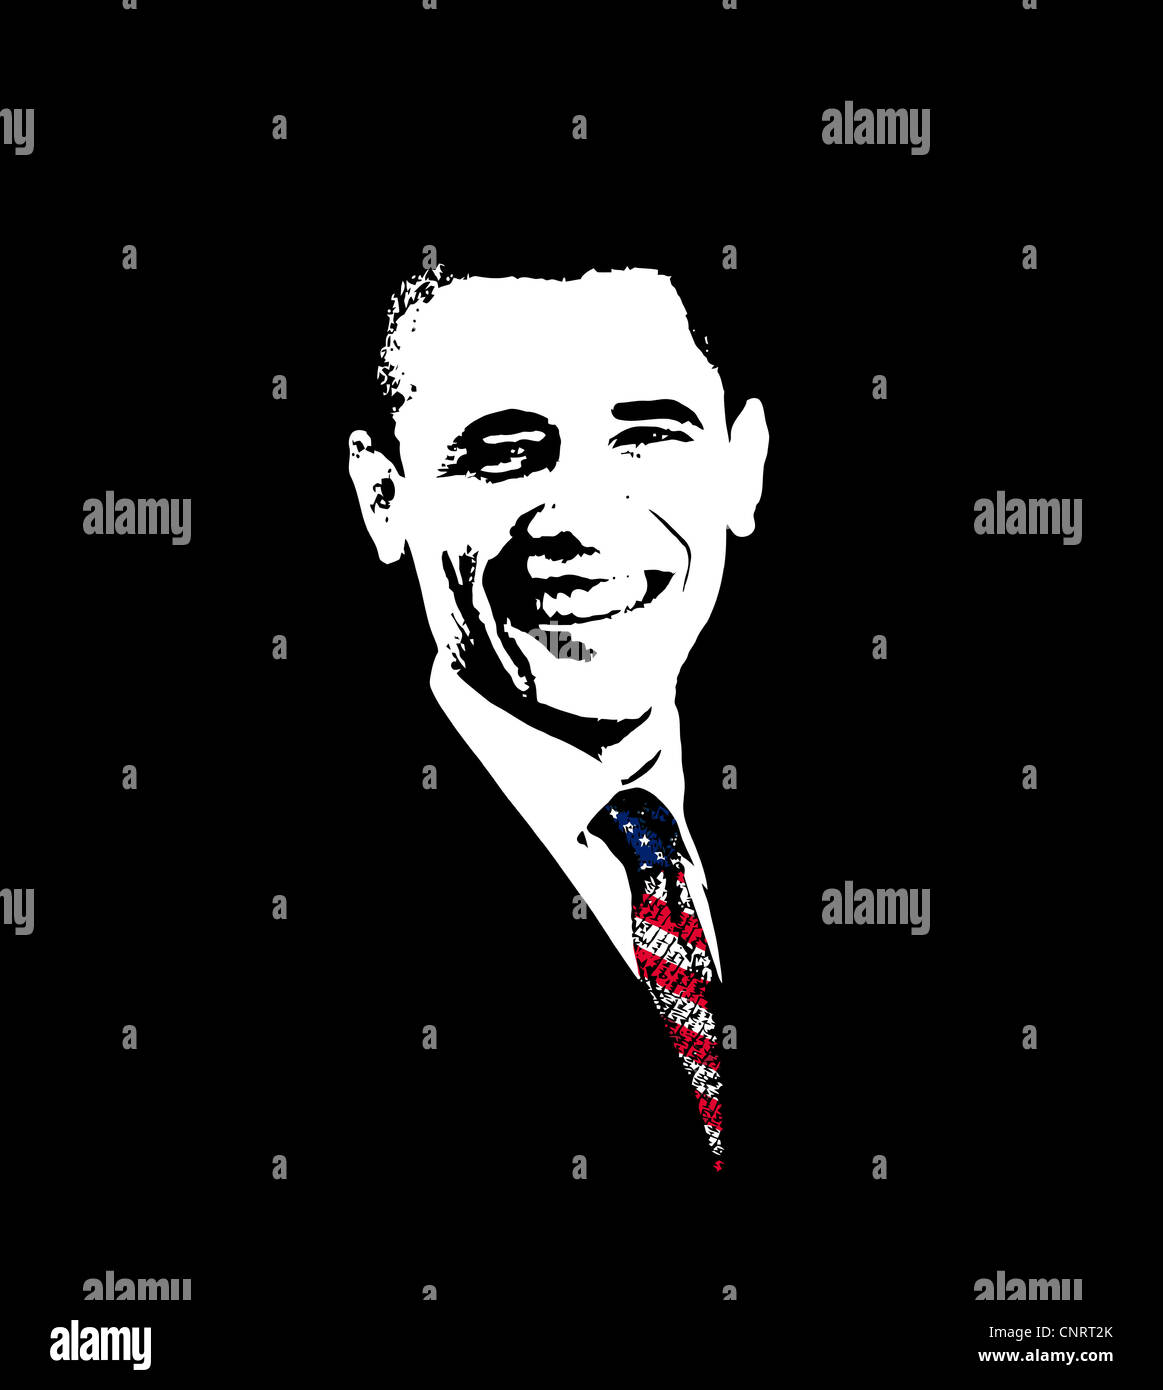 Vector artwork of President Barack Obama wearing a flag tie. - Stock Image